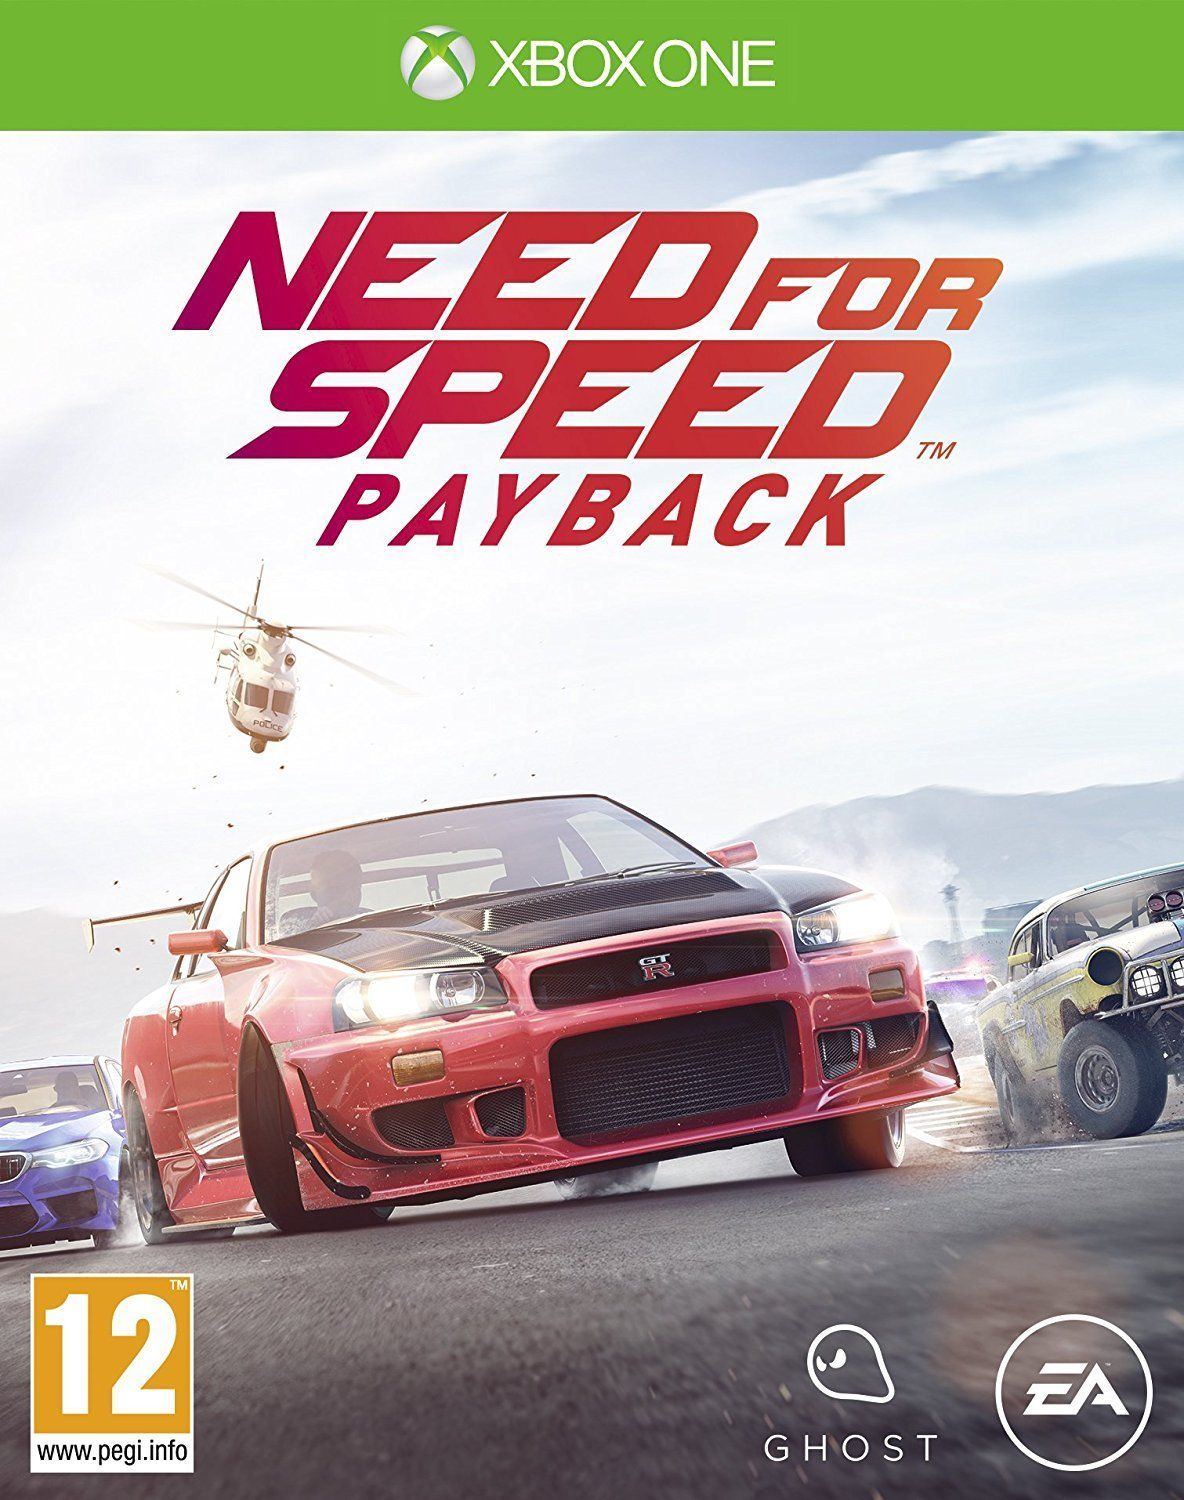 Imagen 64 de Need for Speed Payback para Xbox One